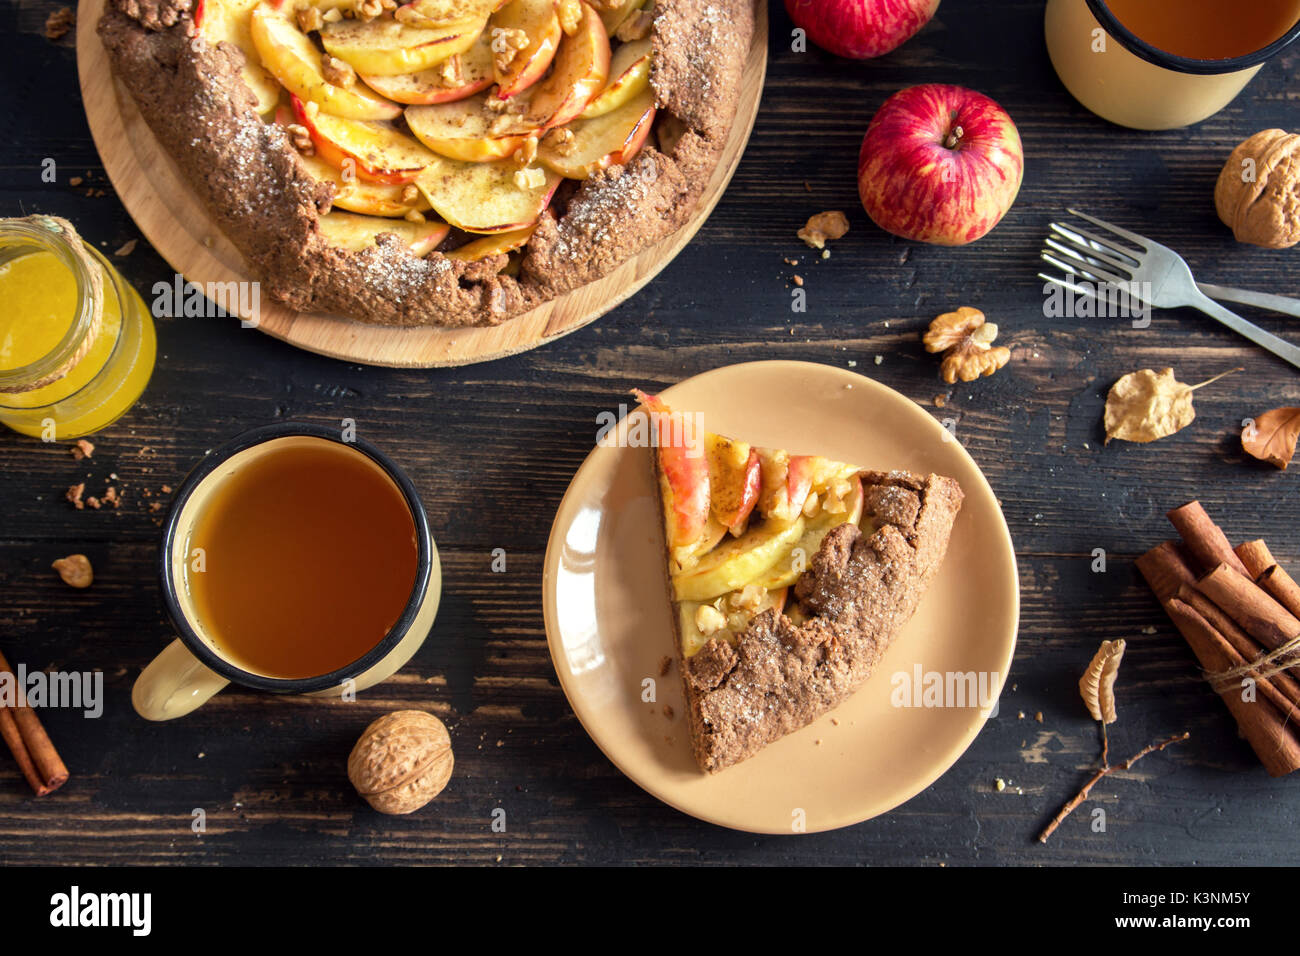 Autumn breakfast with tea and apple pie. Homemade seasonal organic food - apple galette with honey, walnuts and cinnamon for Thanksgiving day. - Stock Image